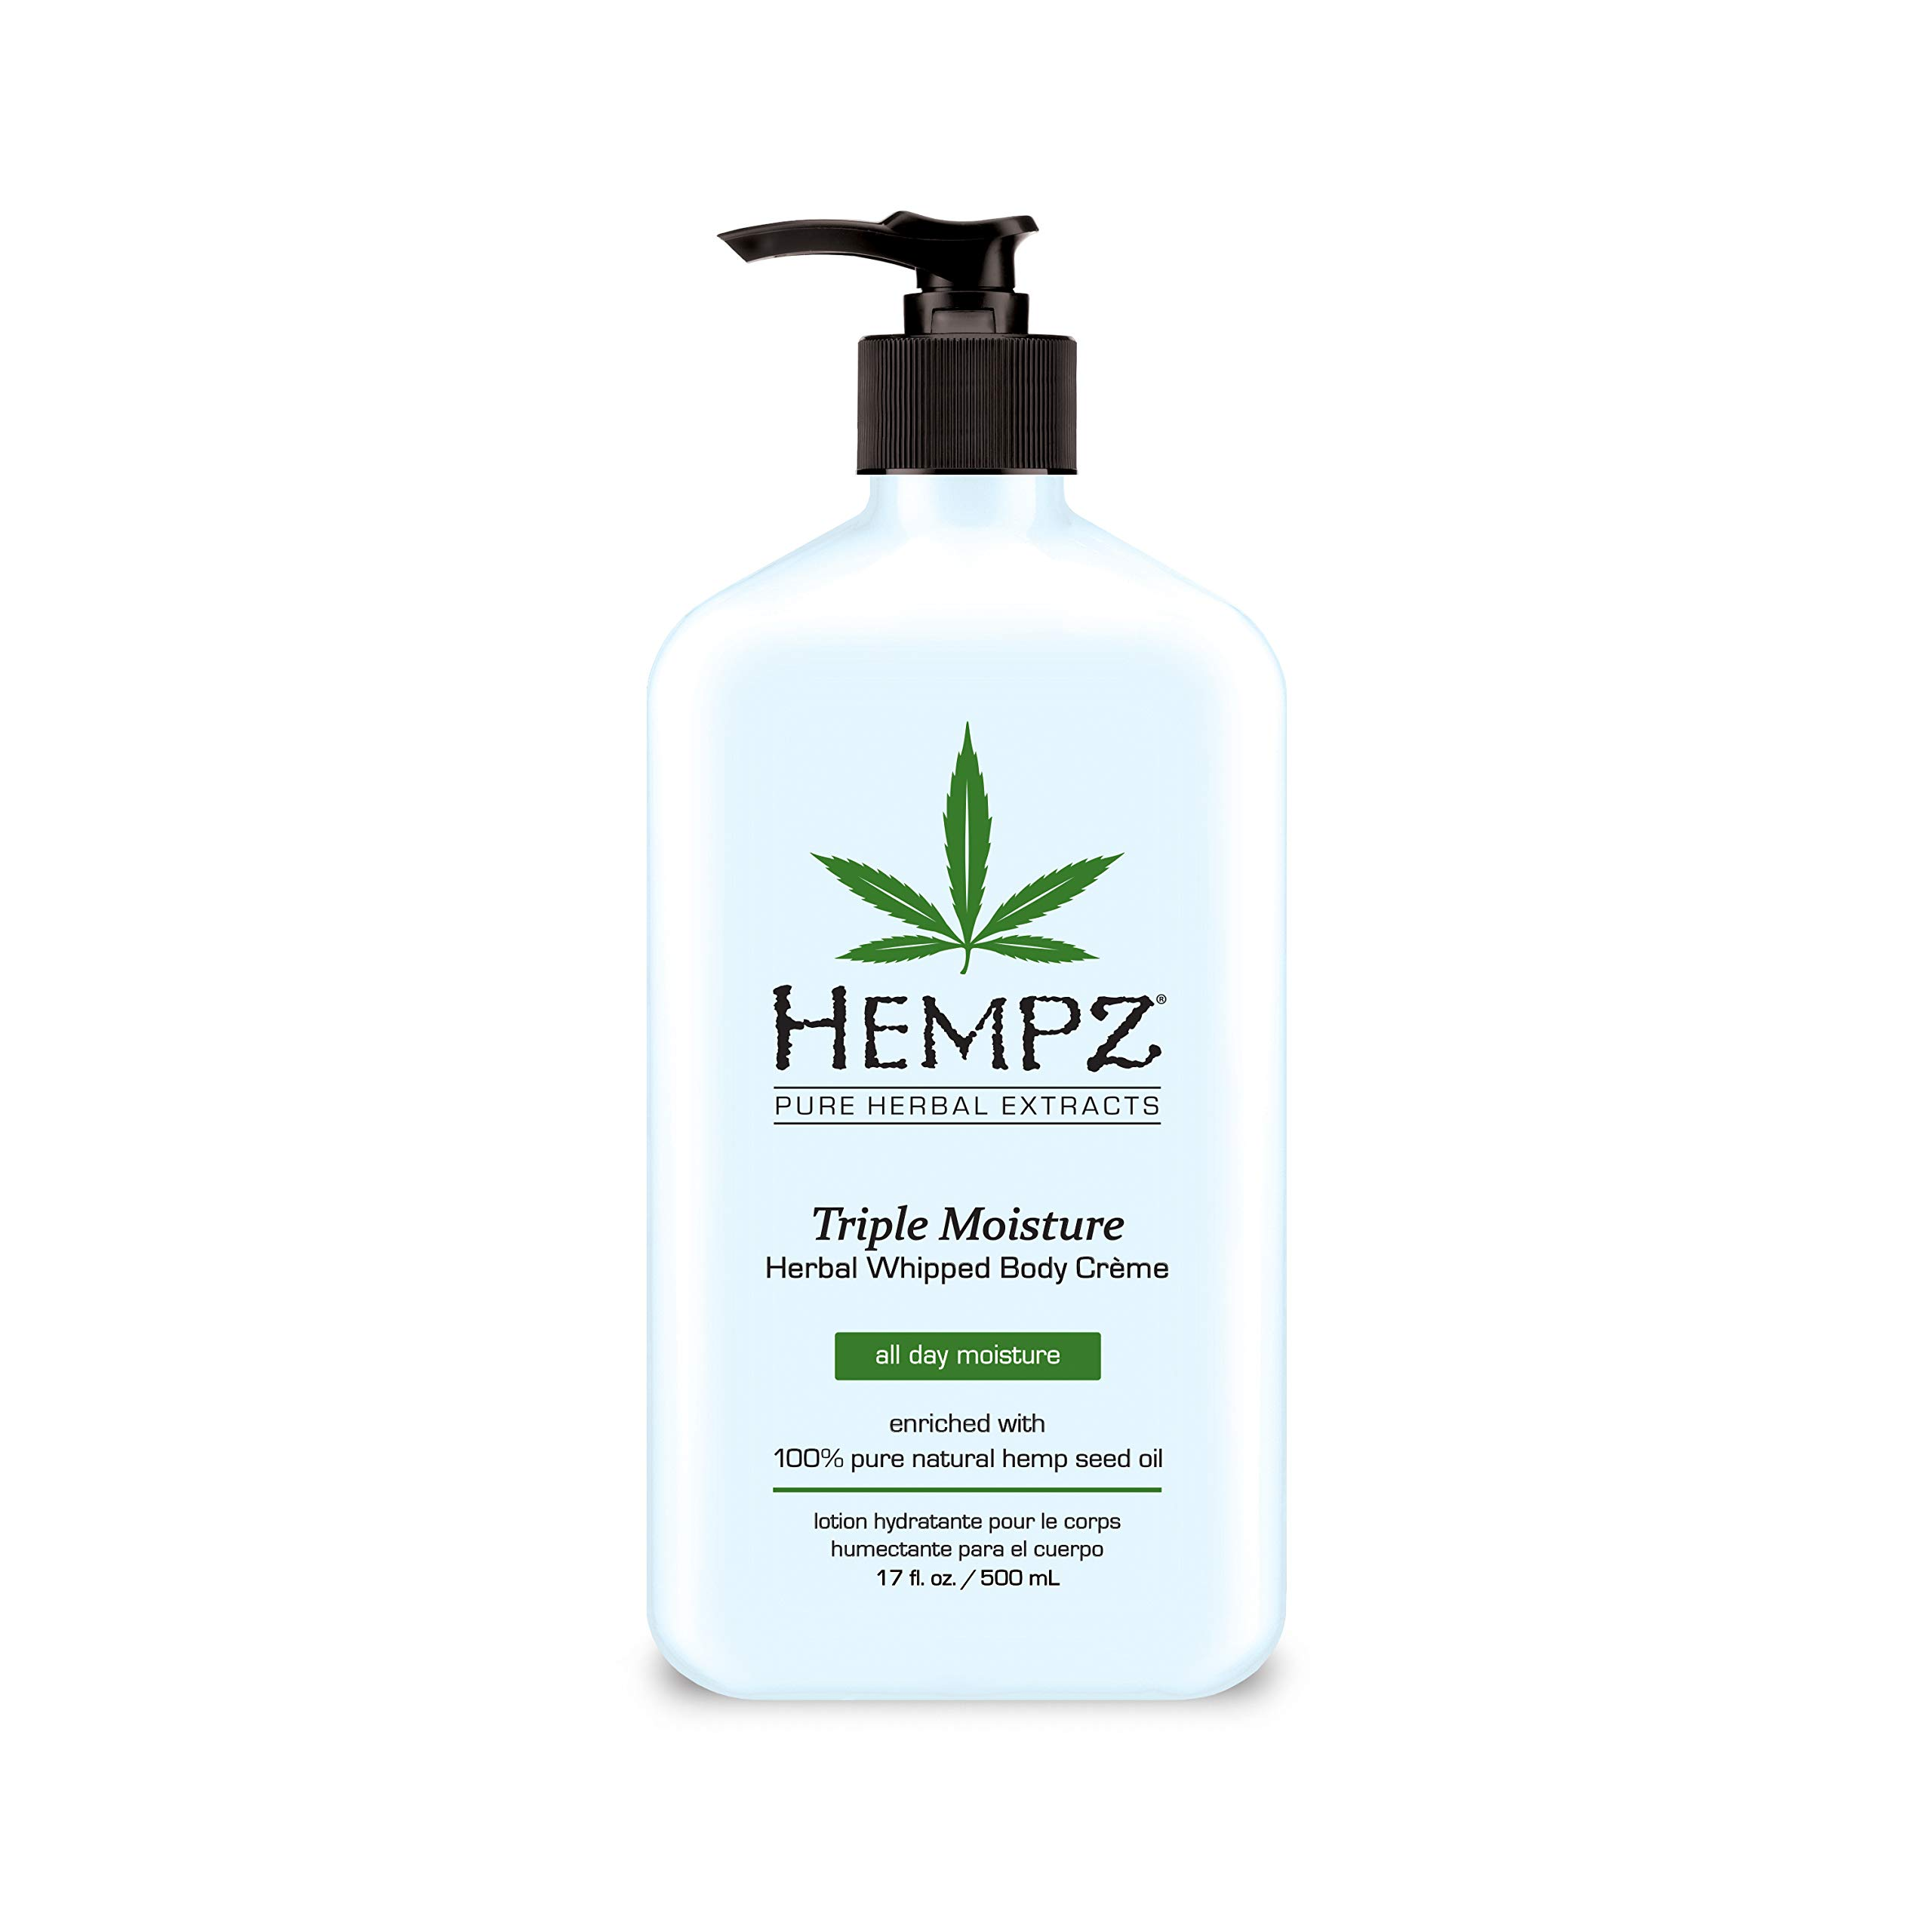 Hempz Natural Triple Moisture Herbal Whipped Body Creme with 100% Pure Hemp Seed Oil for 24-Hour Hydration - Moisturizing Vegan Skin Lotion with Yangu Oil, Peach and Grapefruit - Enriched Moisturizer by Hempz